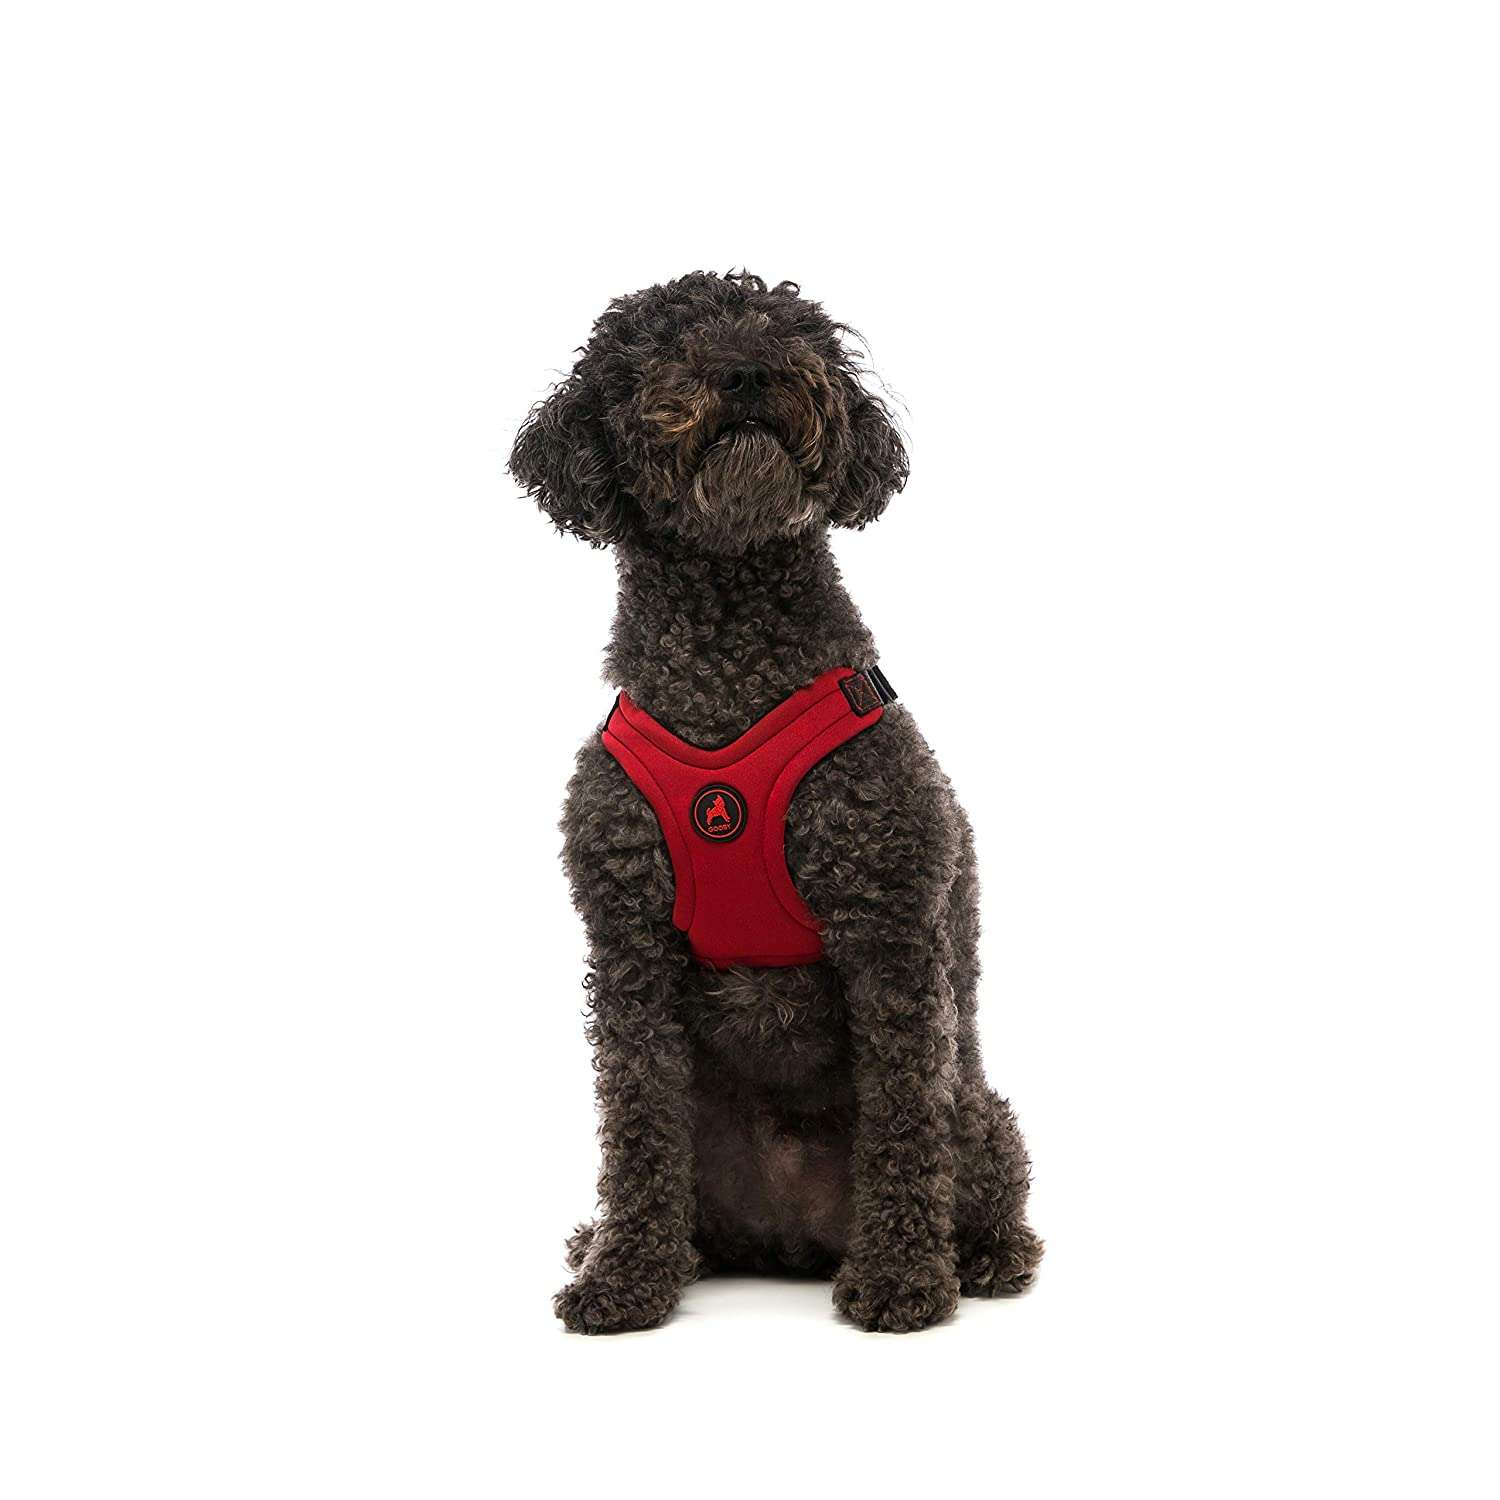 Gooby Escape Free Sport Dog Harness for Dogs That Pulls and Escapes, Red, Medium